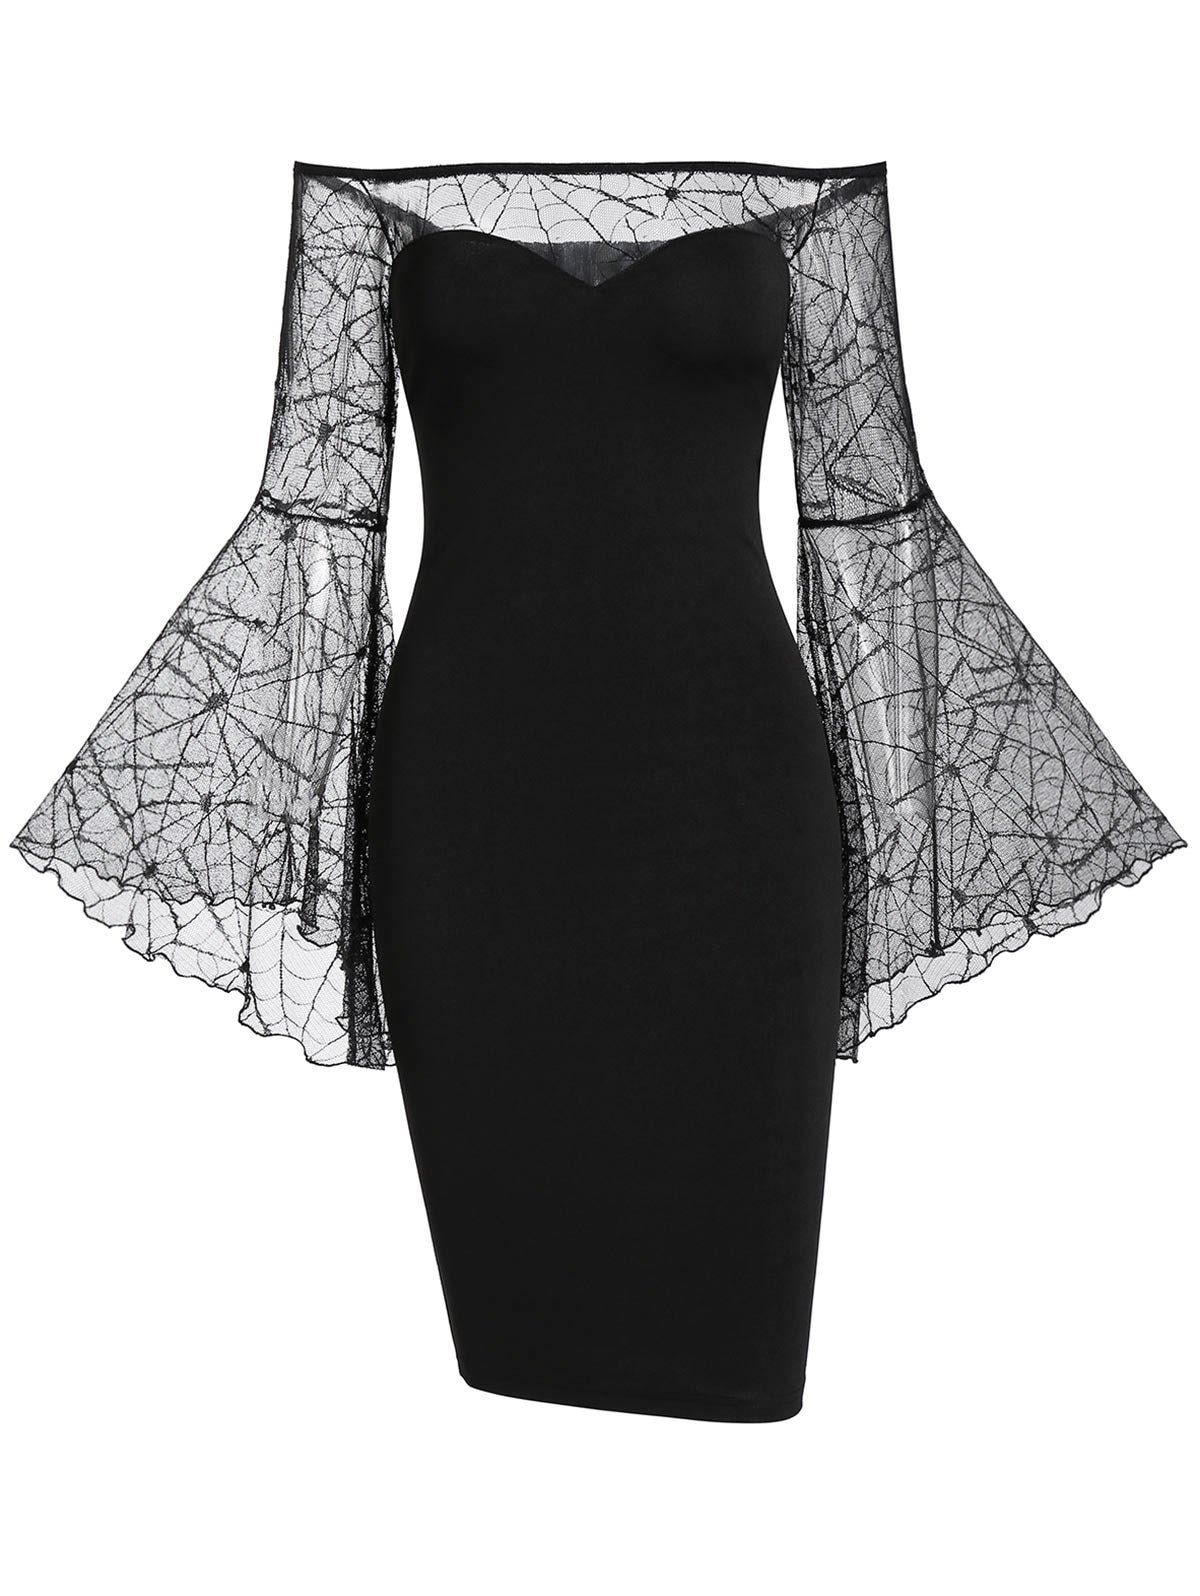 Dresslily Com Photo Gallery Off The Shoulder Sheer Bell Sleeve Gothic Halloween Bodycon Dress Classy Dress Bodycon Dress Bodycon Dress Homecoming